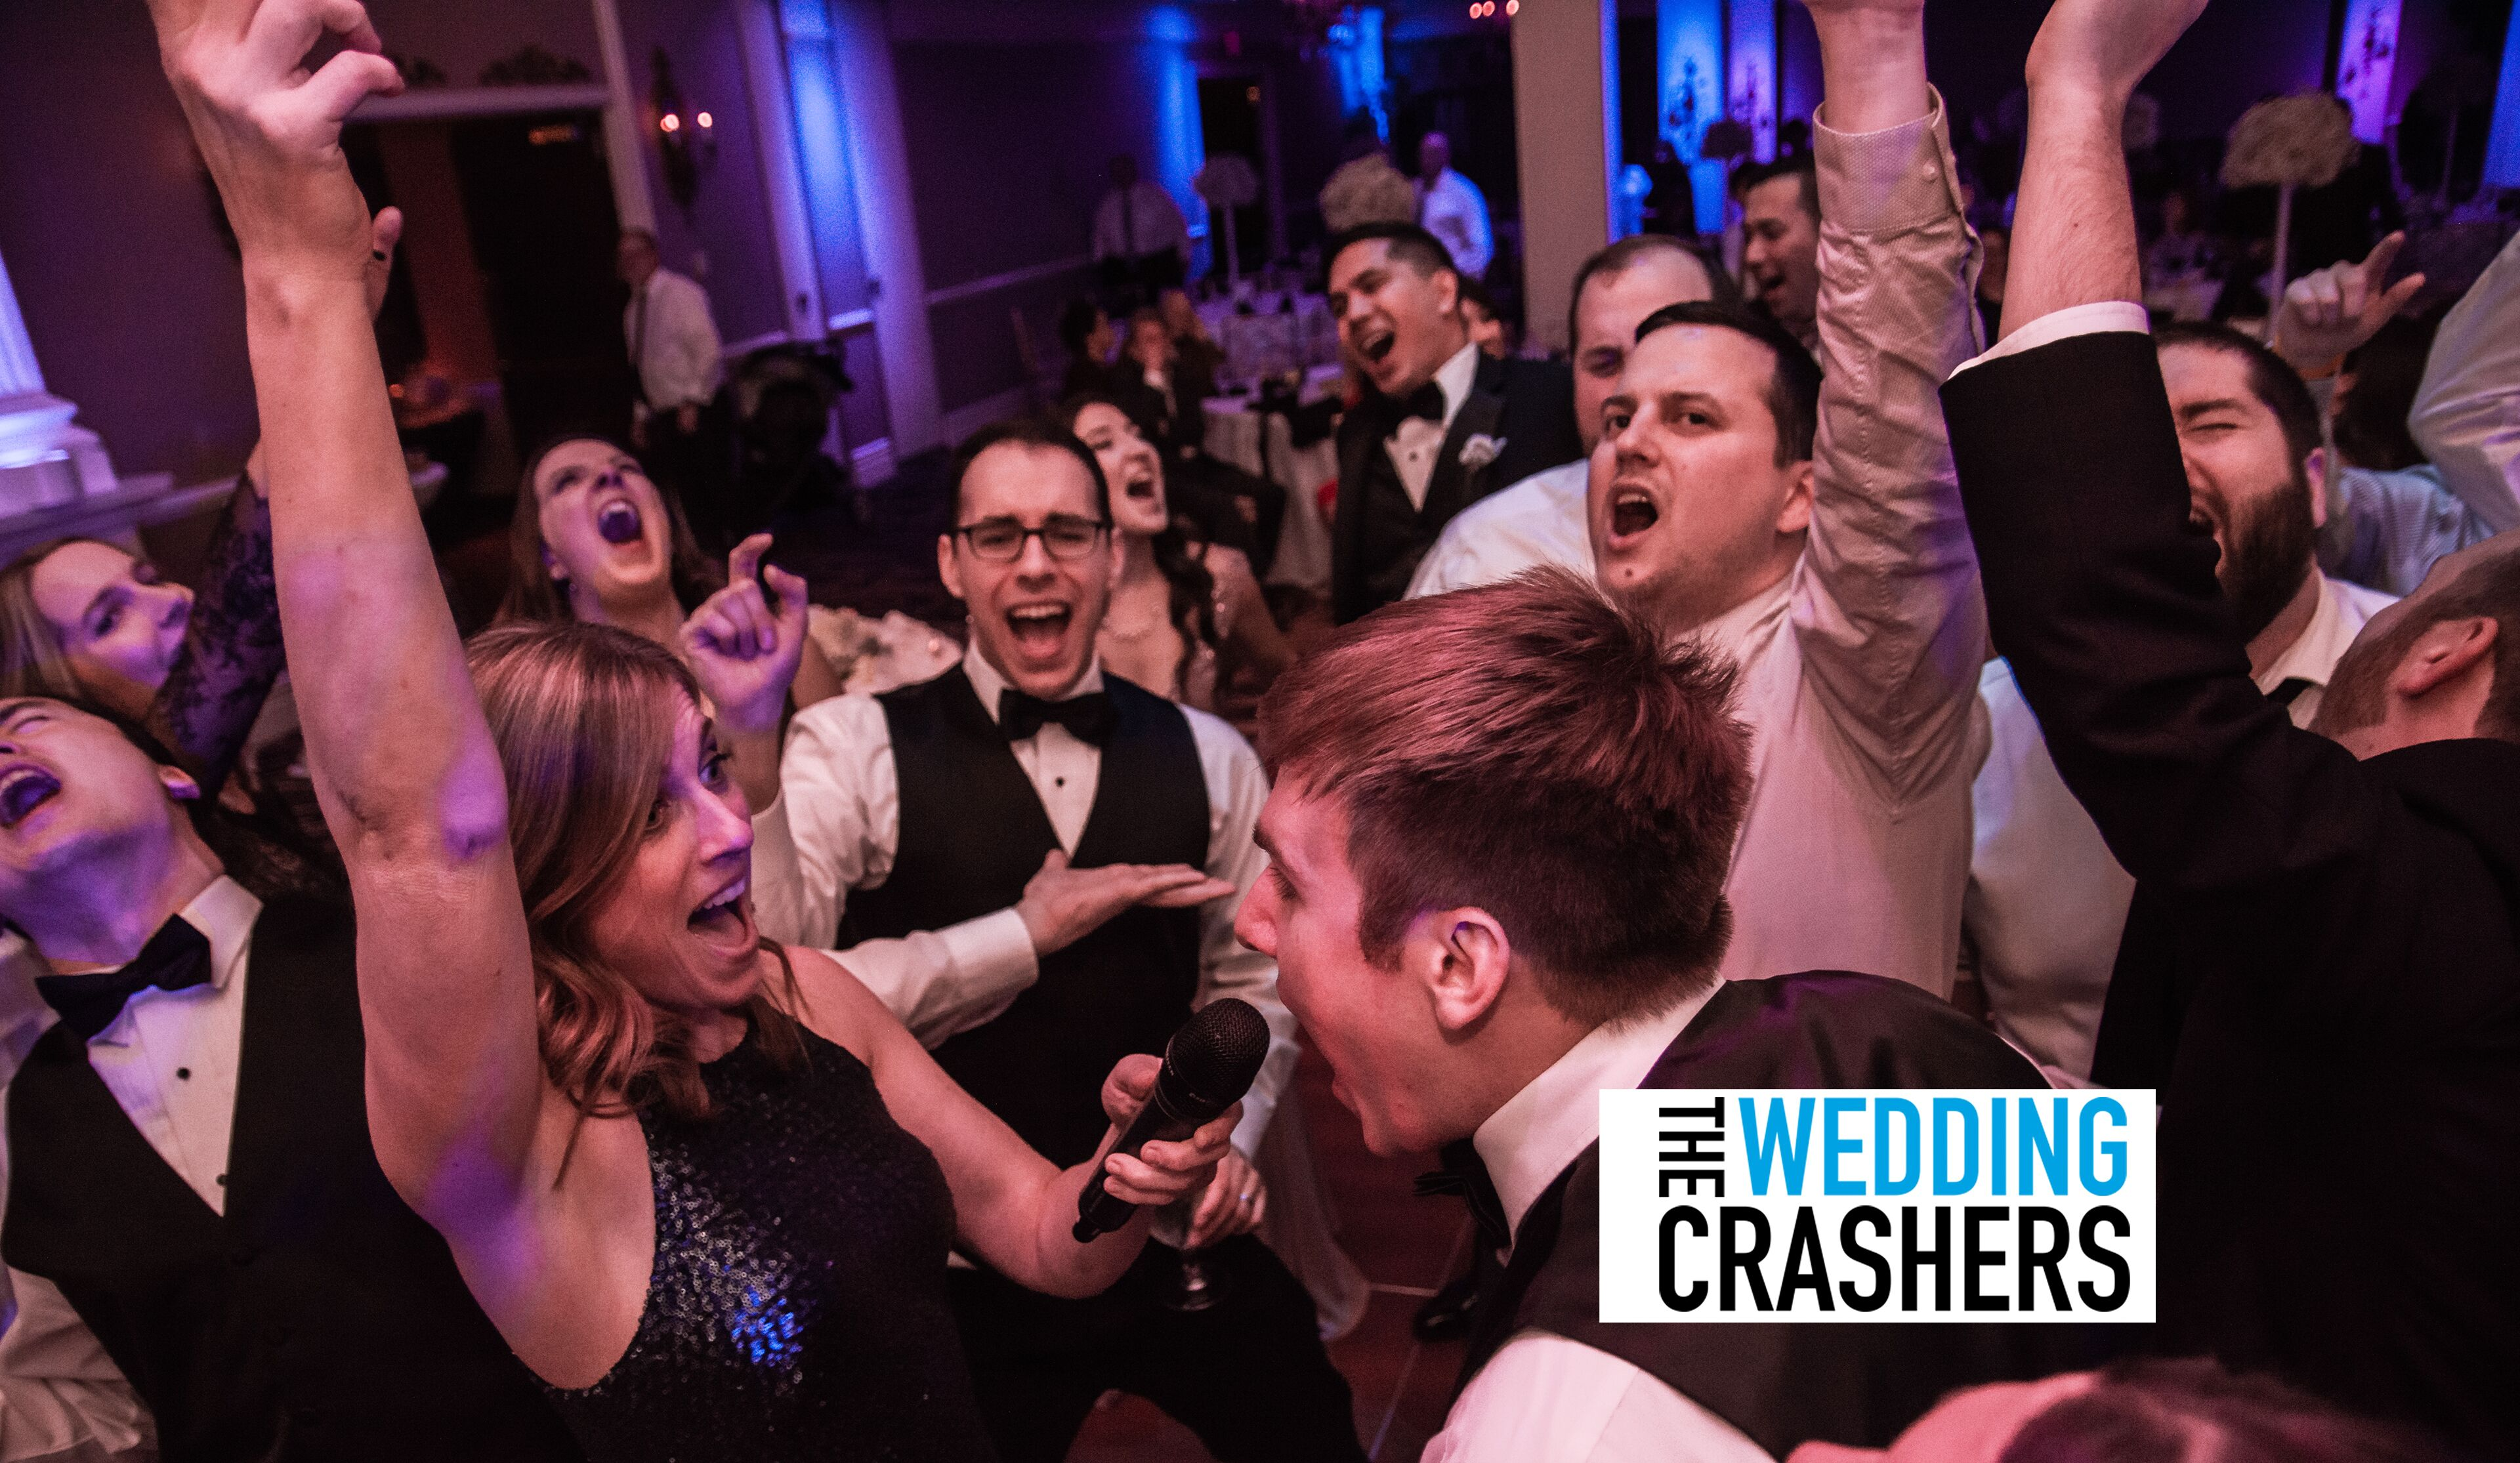 Wedding Crashers Parents Guide What To Do If A Wedding Crasher Comes To Your Wedding 2020 10 27